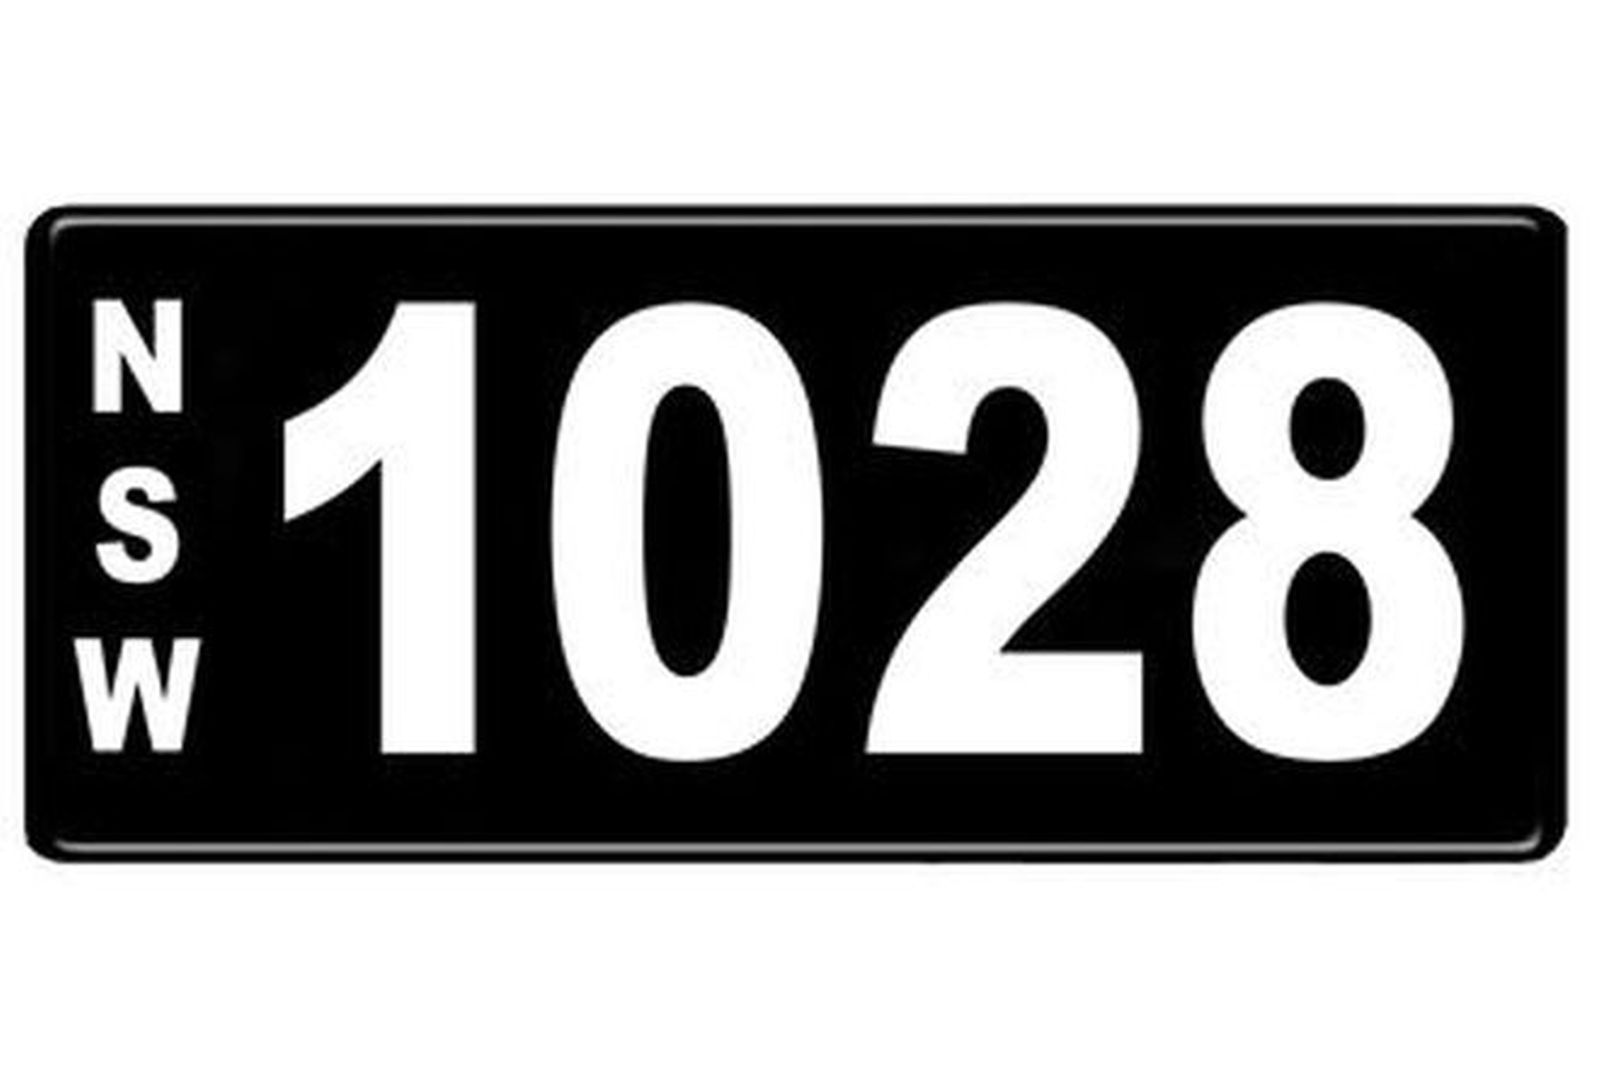 Number Plates - NSW Numerical Number Plates '1028'